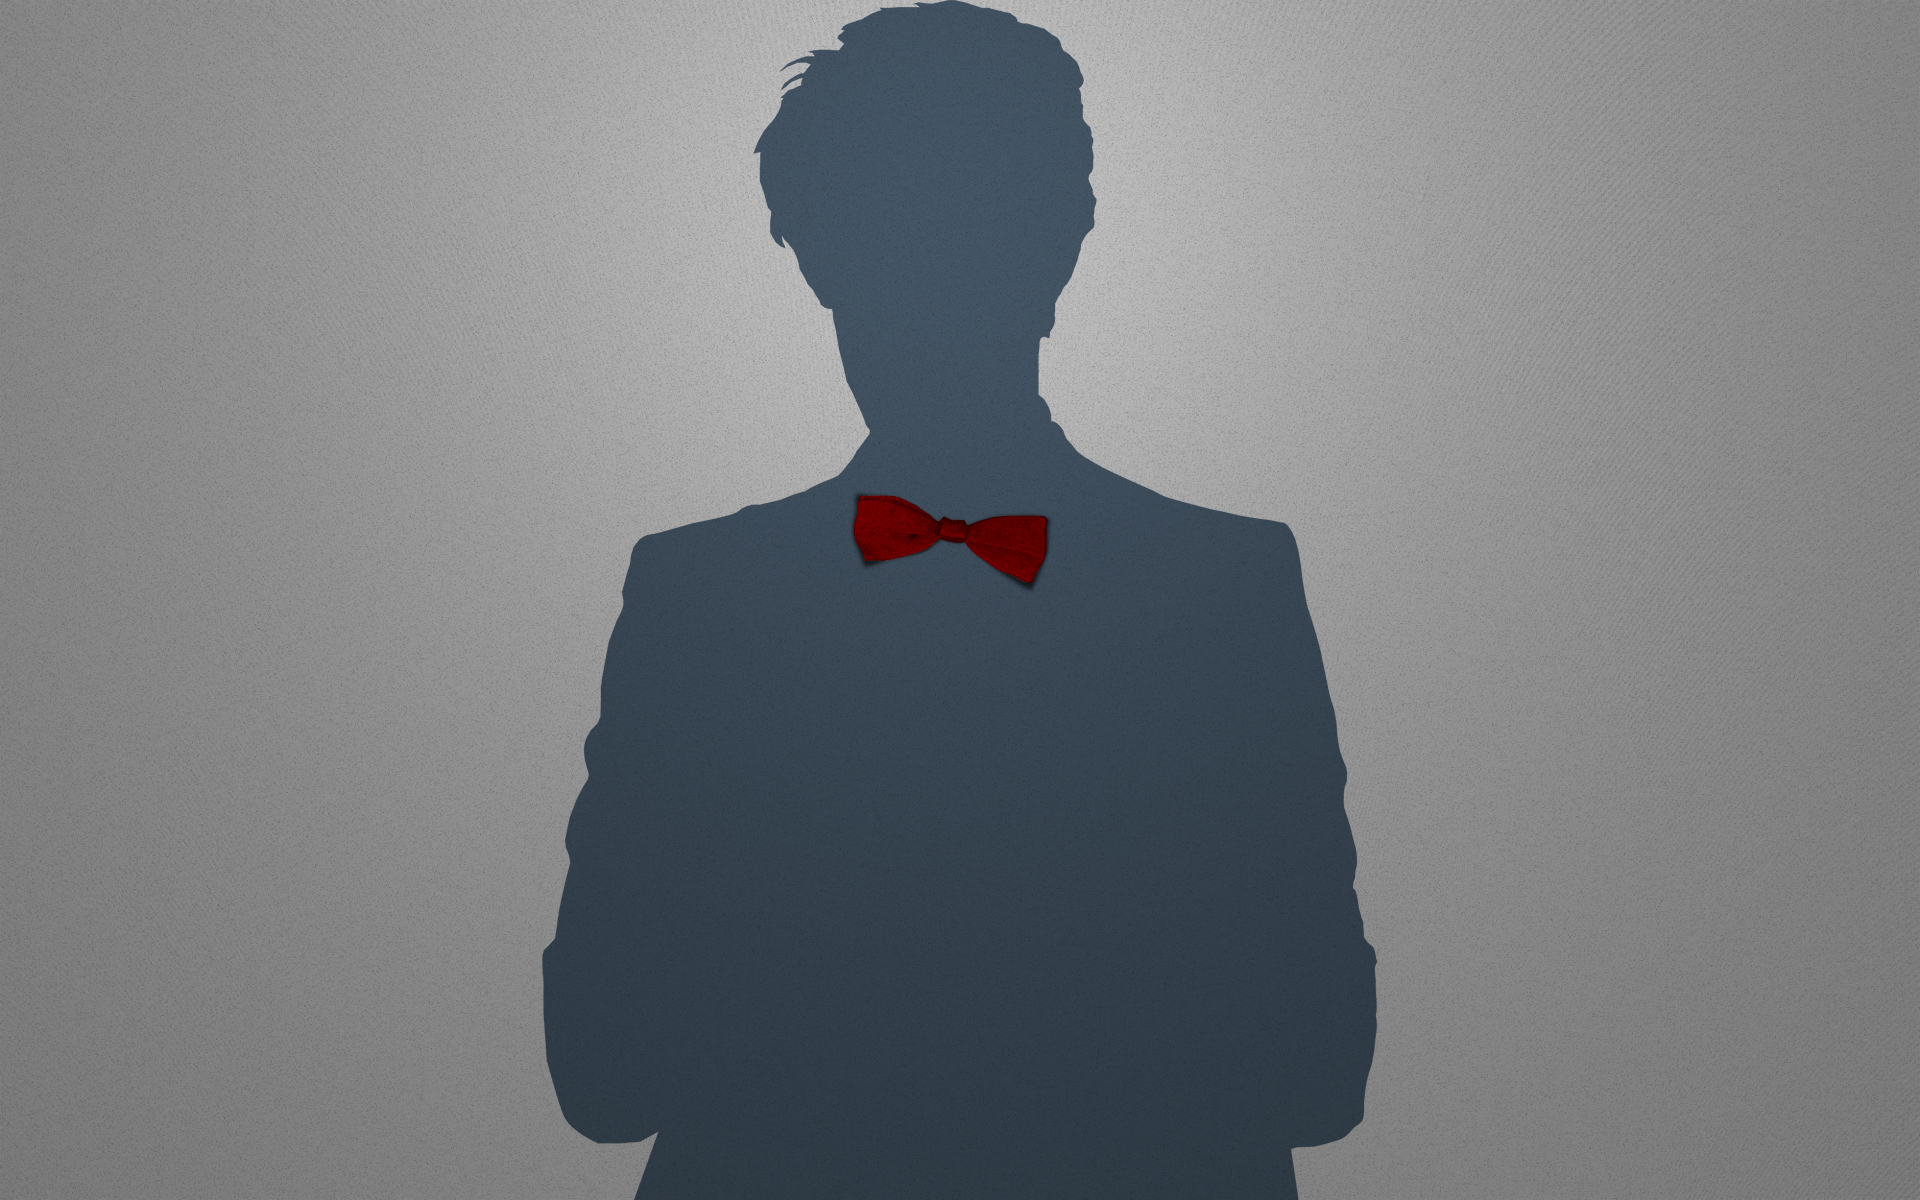 minimalistic eleventh doctor Doctor HD Wallpaper